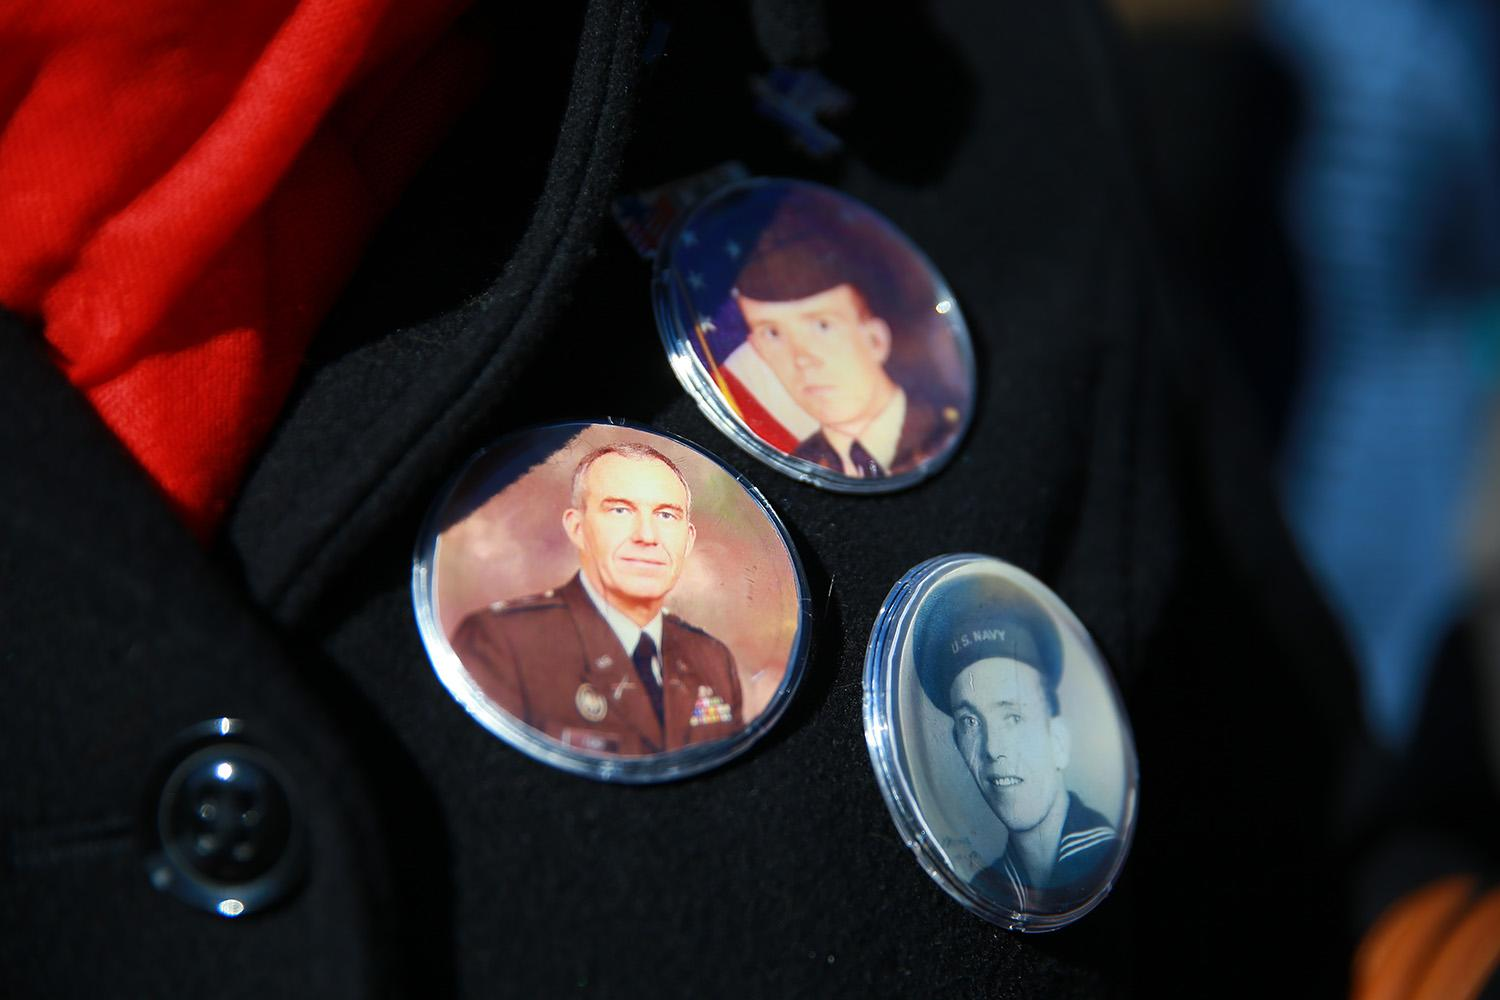 <p>A woman wears buttons of loved ones who served in the armed forces during the Veterans Day parade in New York on Nov. 11, 2018. (Photo: Gordon Donovan/Yahoo News) </p>